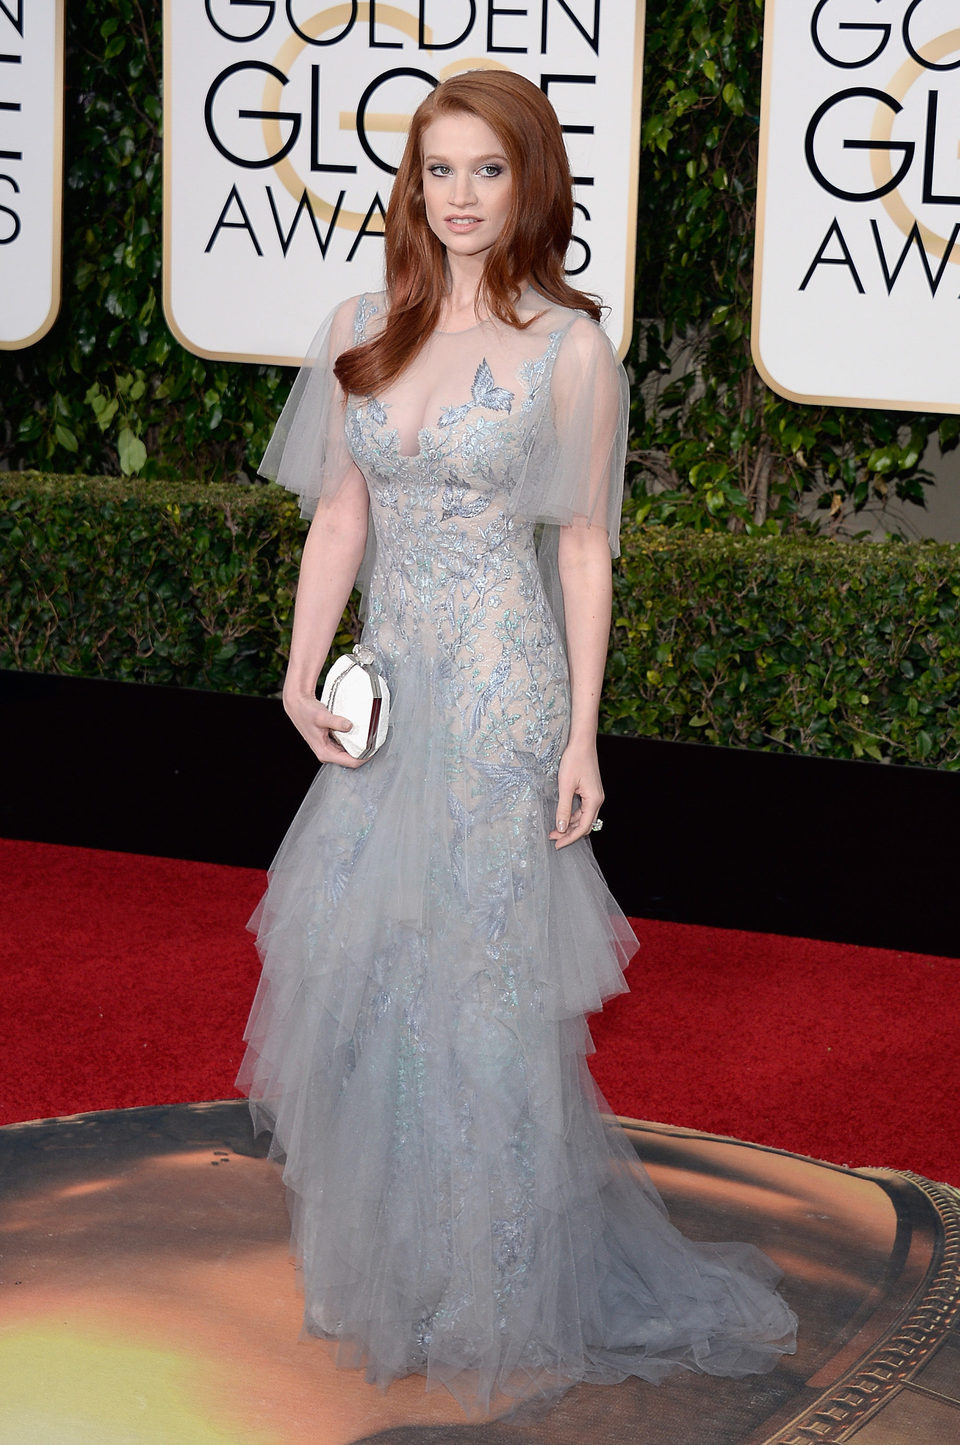 Sarah Hay in the 2016 Golden Globes red carpet